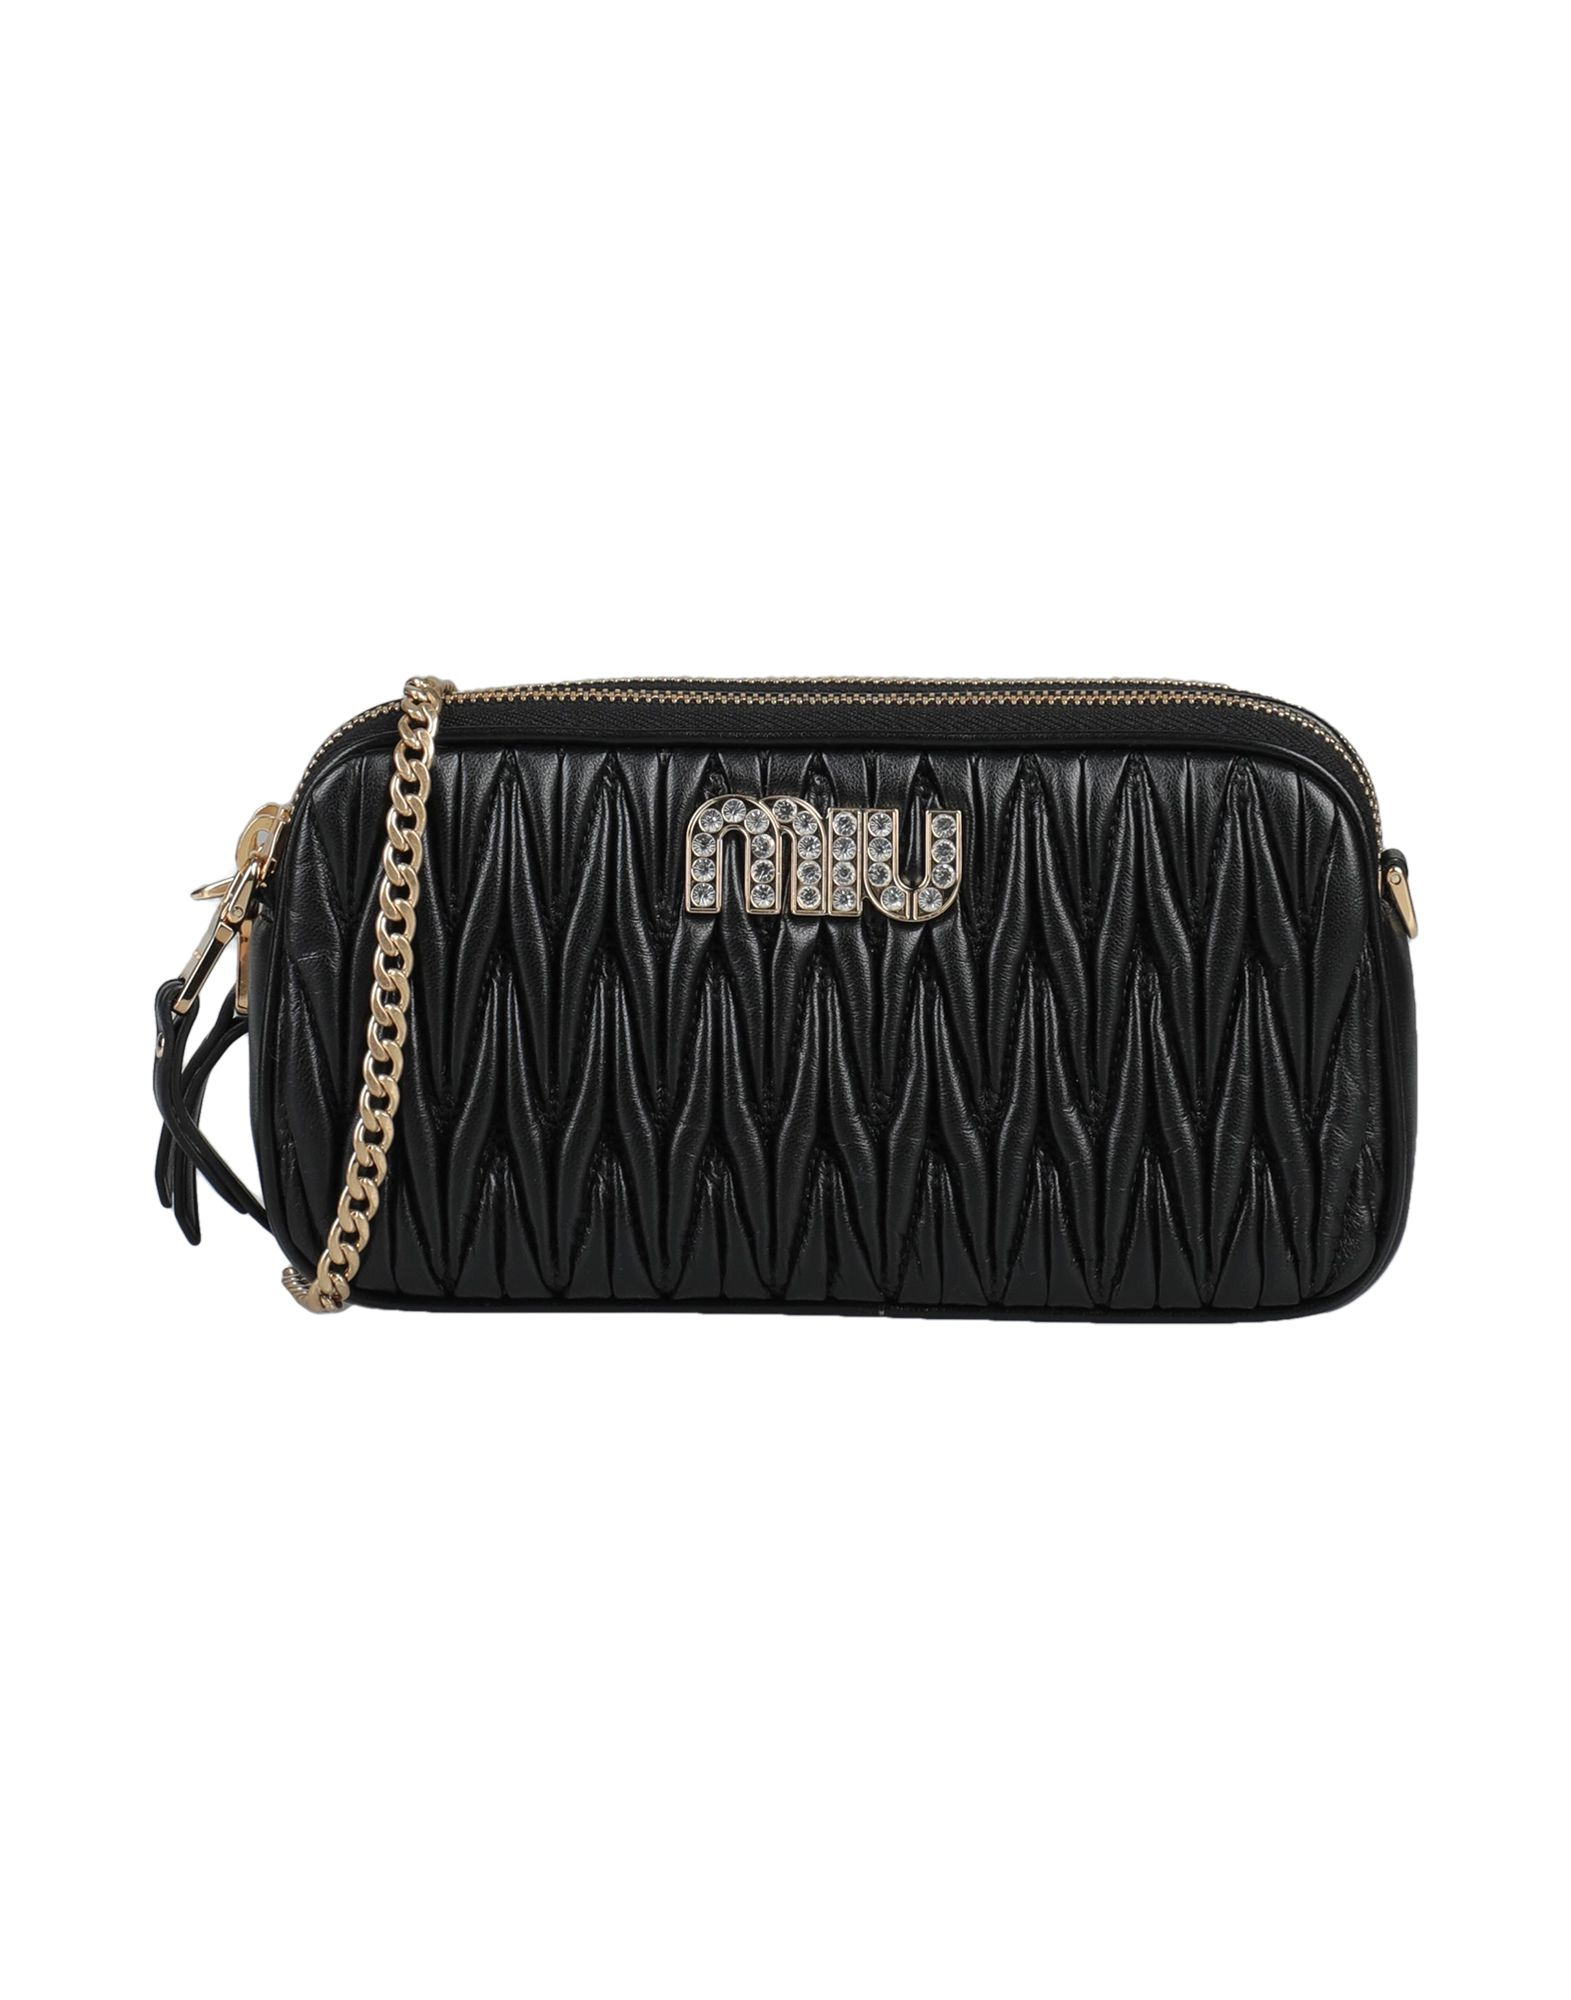 MIU MIU Cross-body bags - Item 45524379